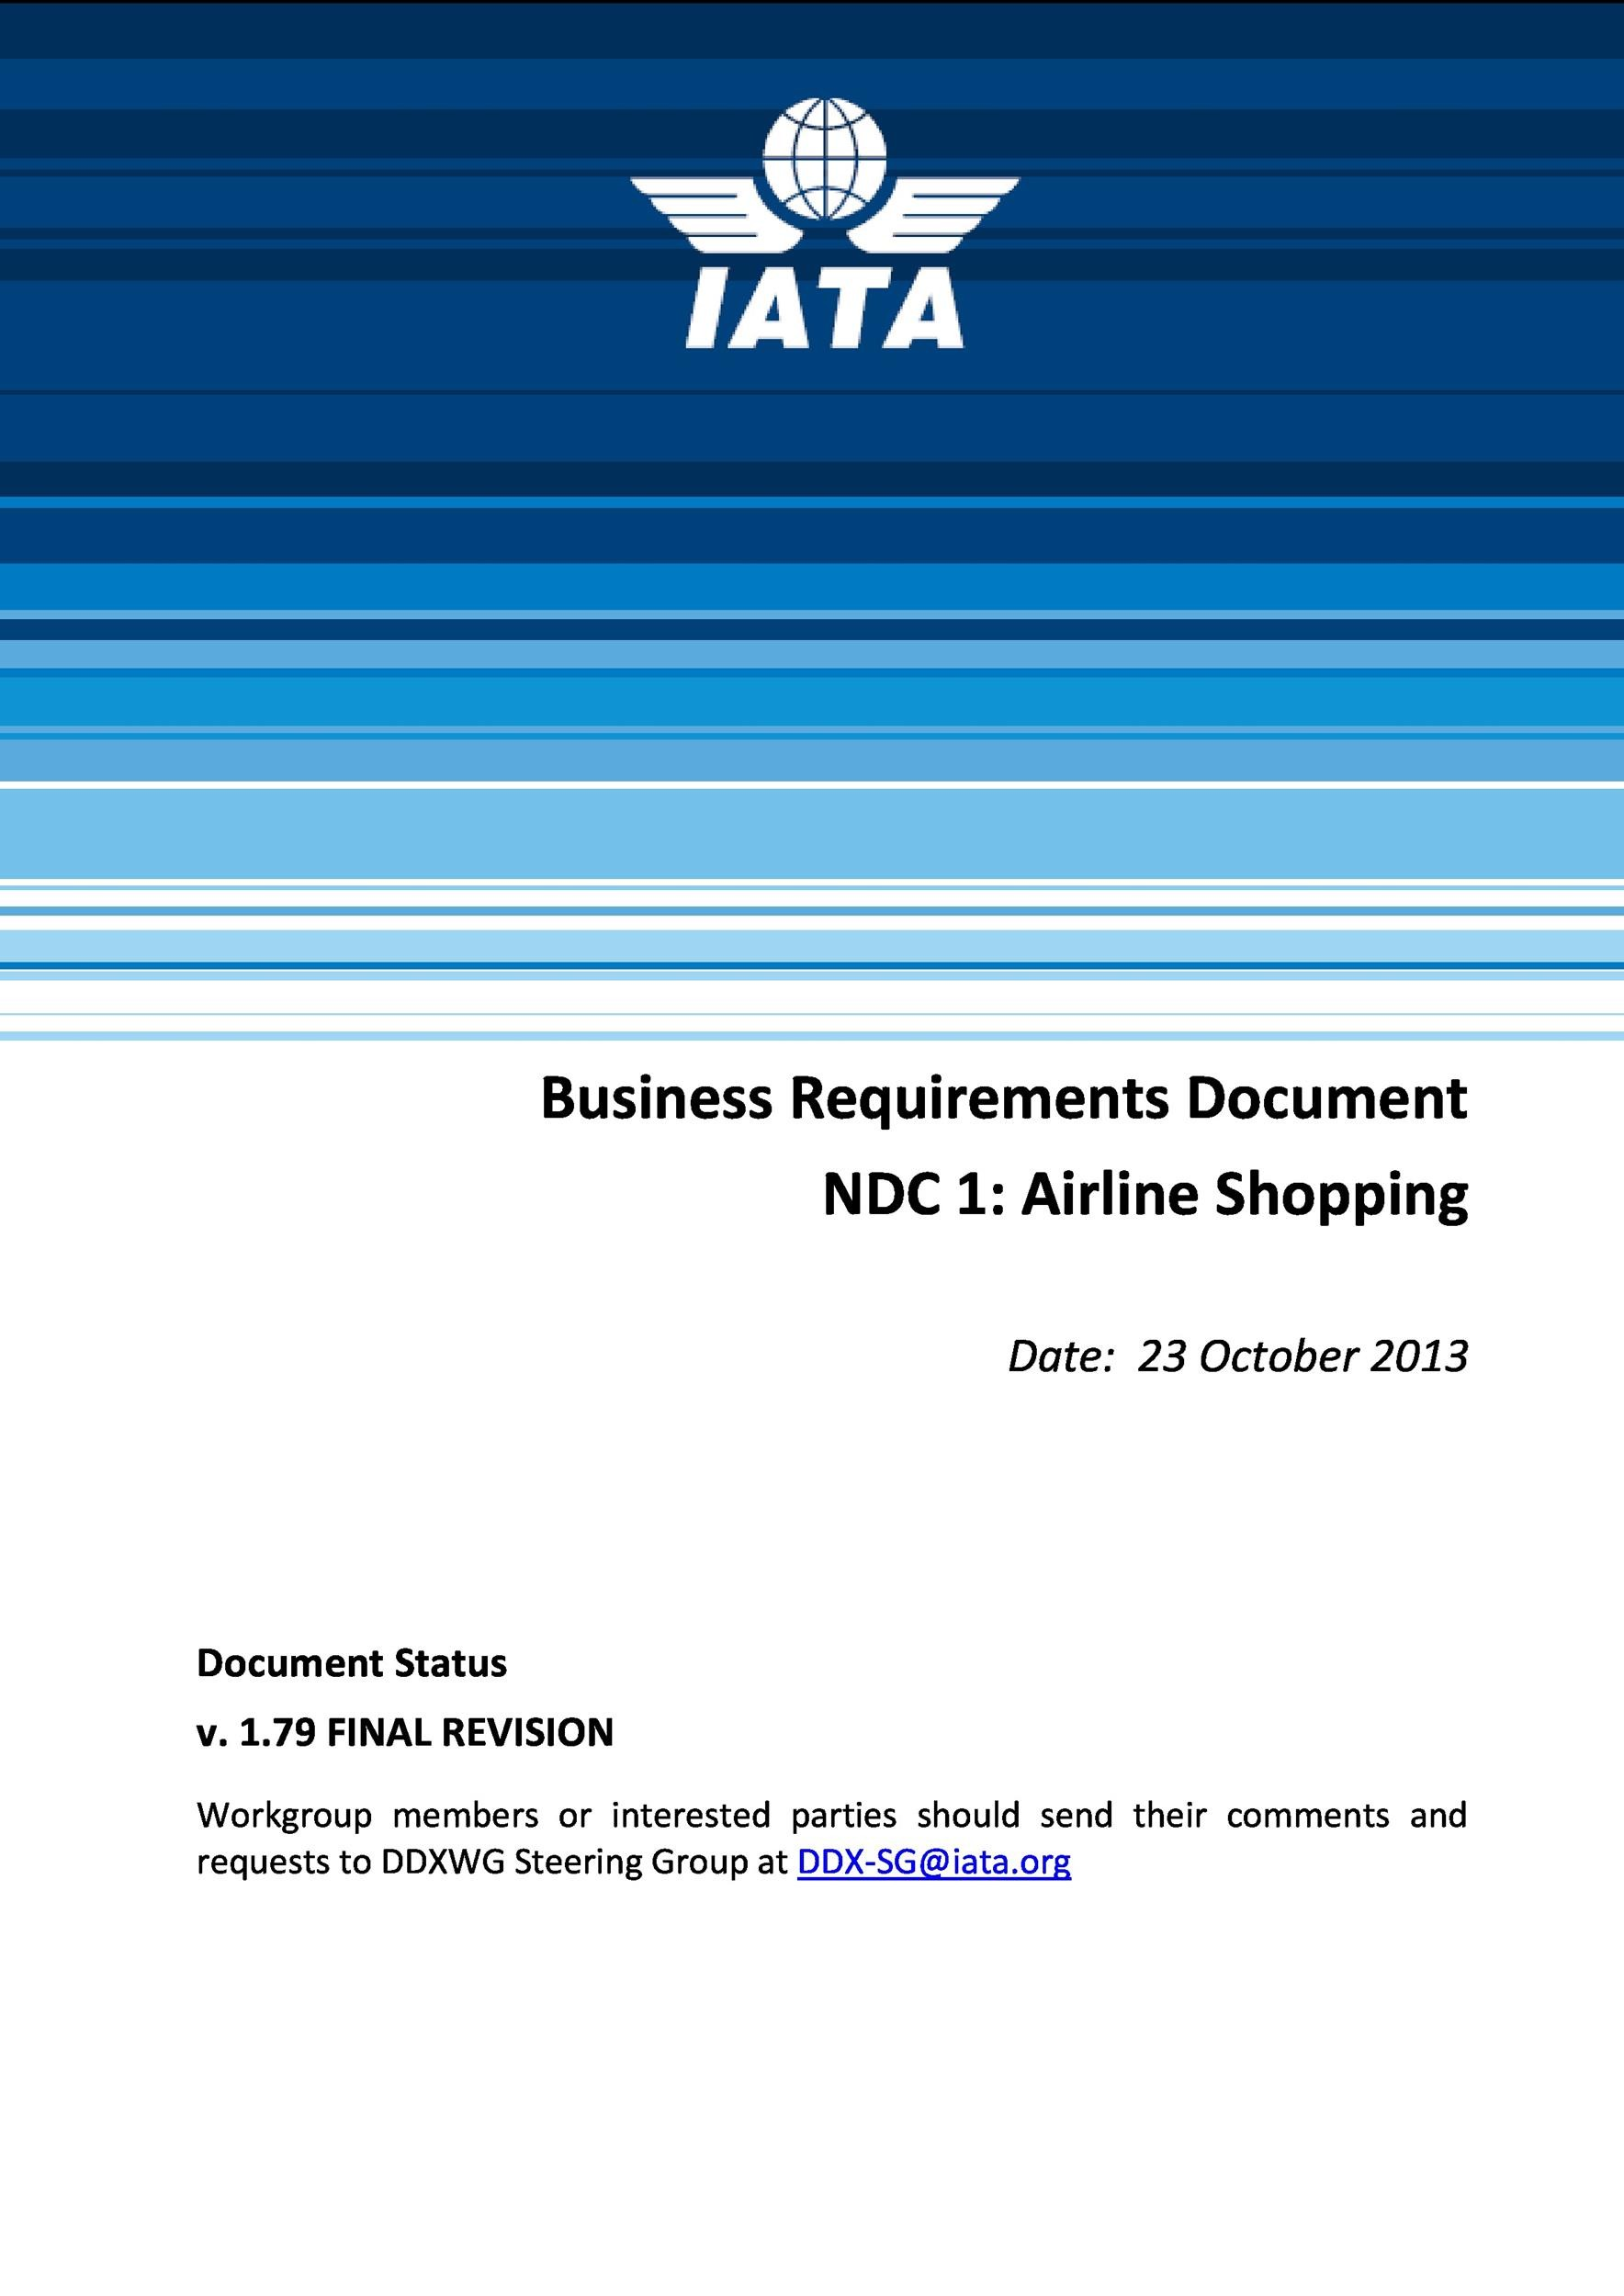 40 simple business requirements document templates template lab printable business requirements document template 40 wajeb Image collections